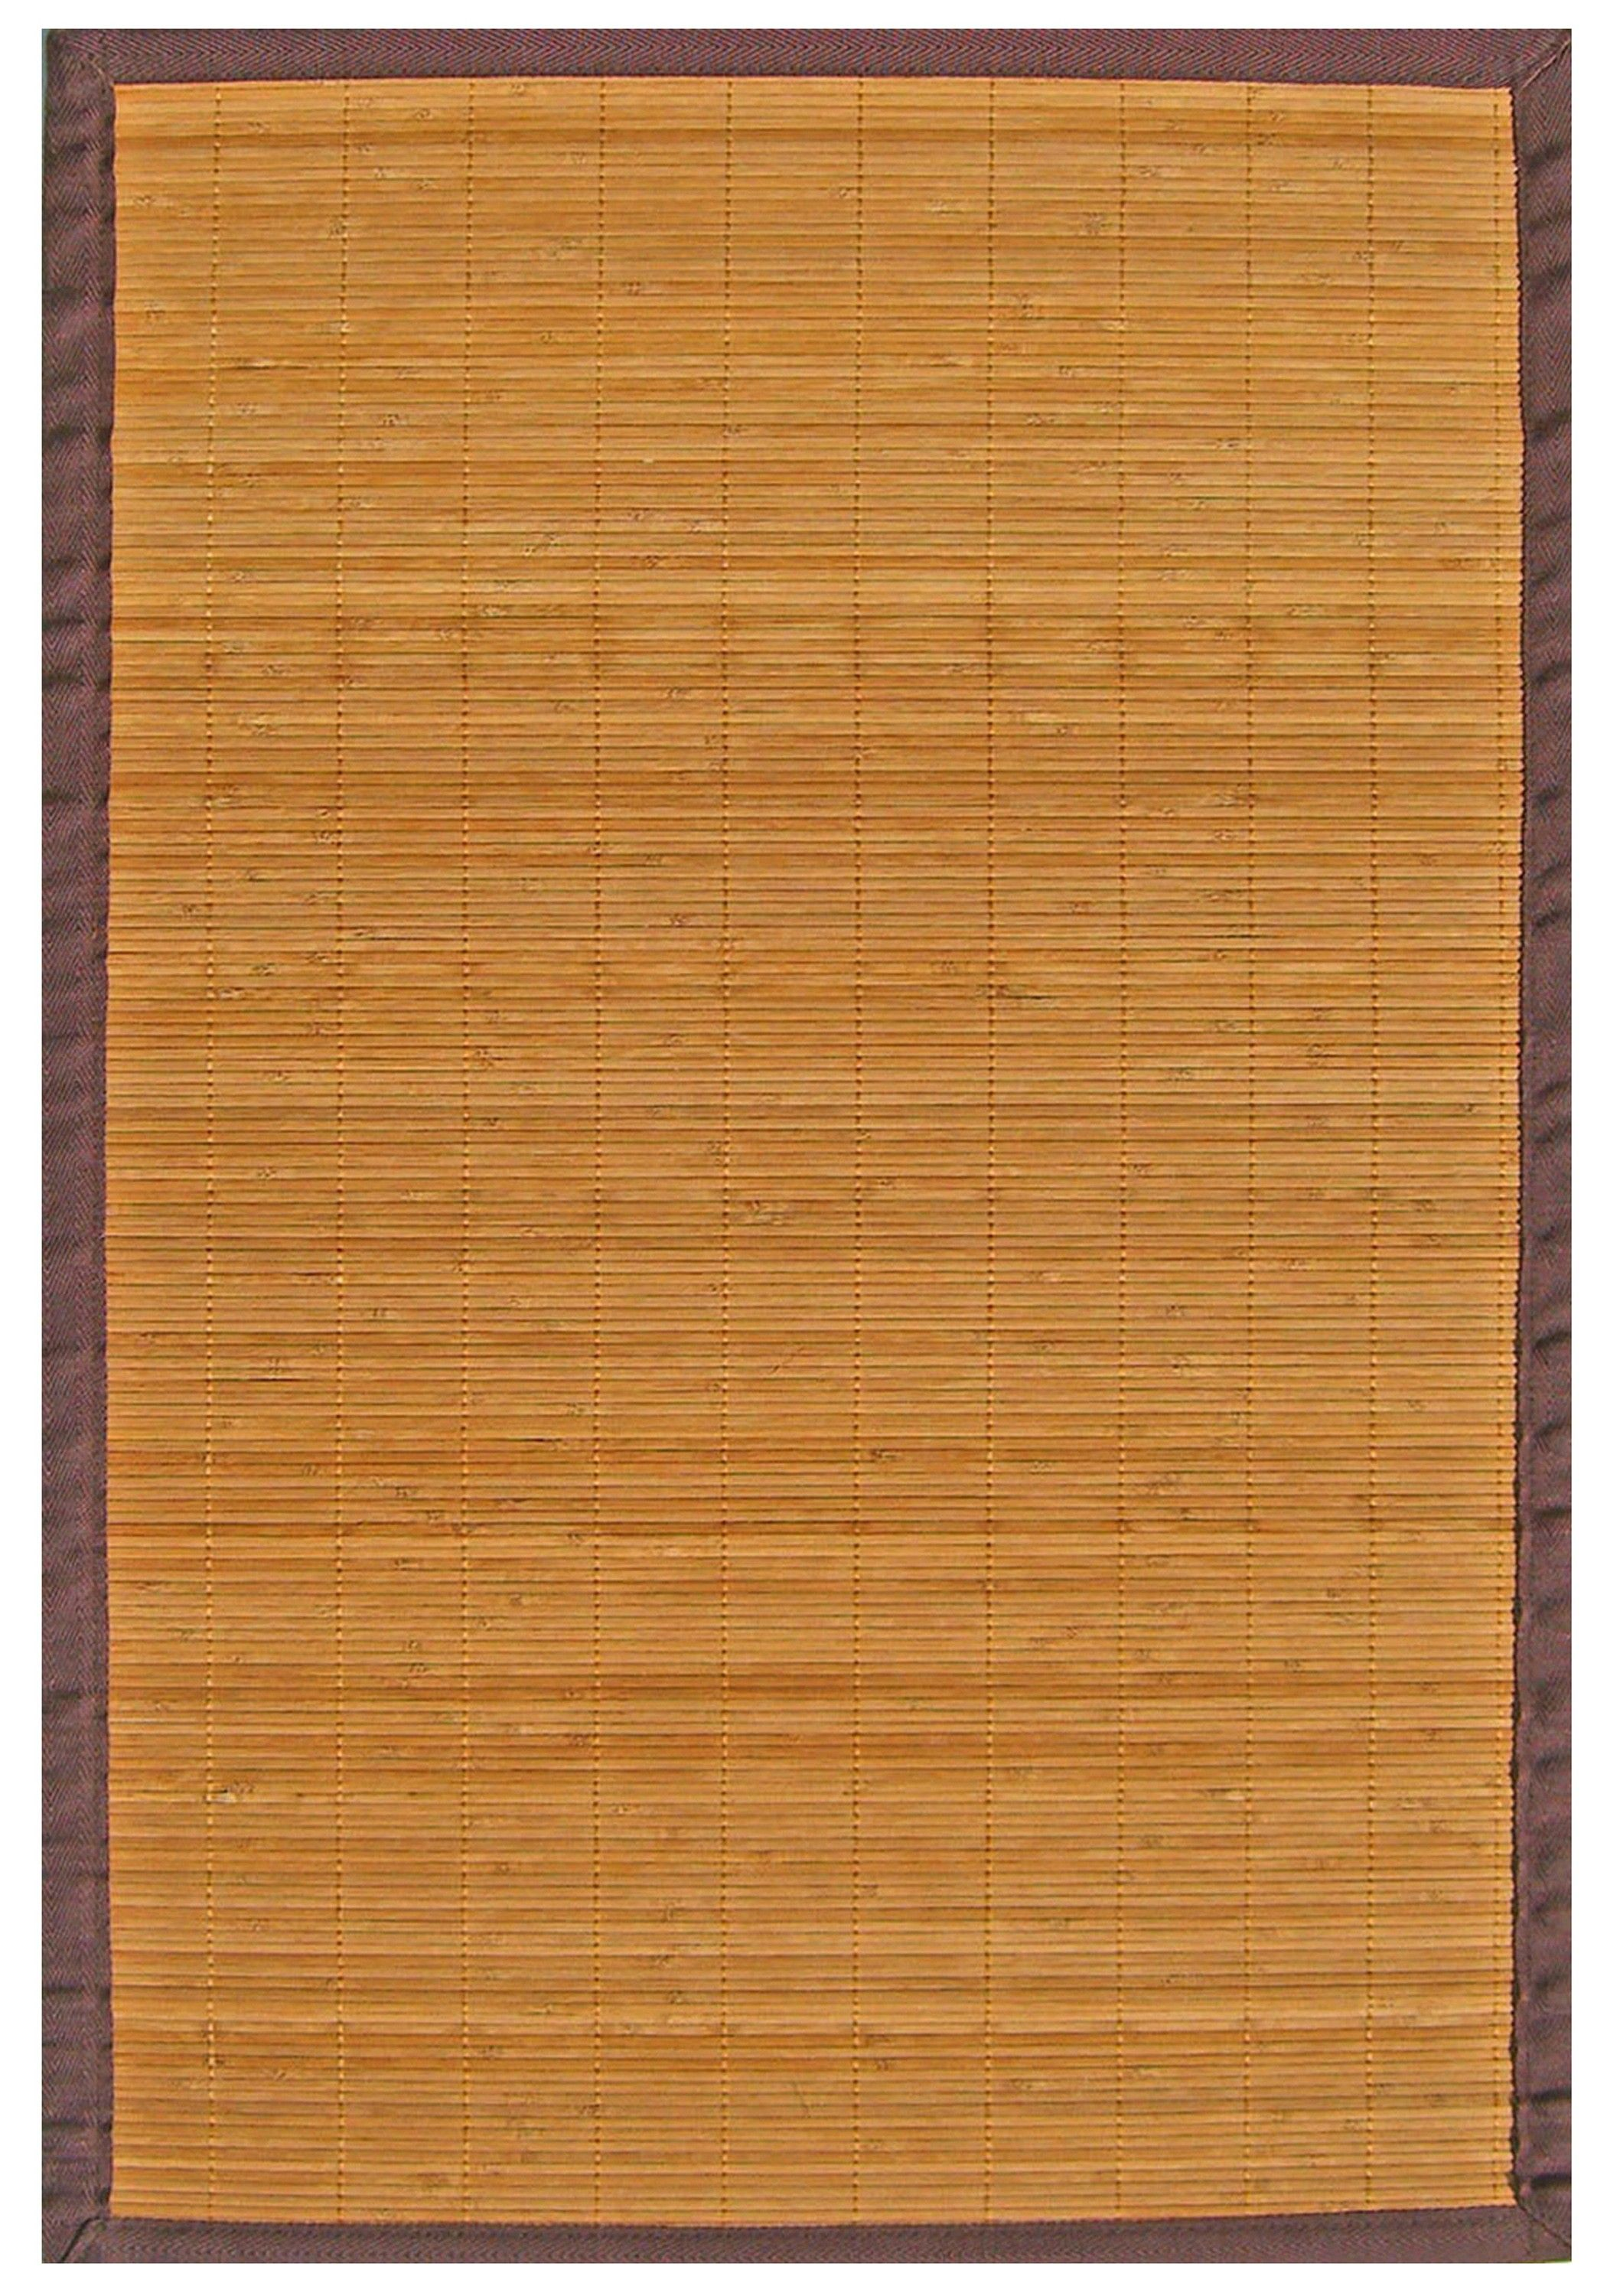 Villager Natural Bamboo Rug 6 x 9 Bamboo rugs have been a